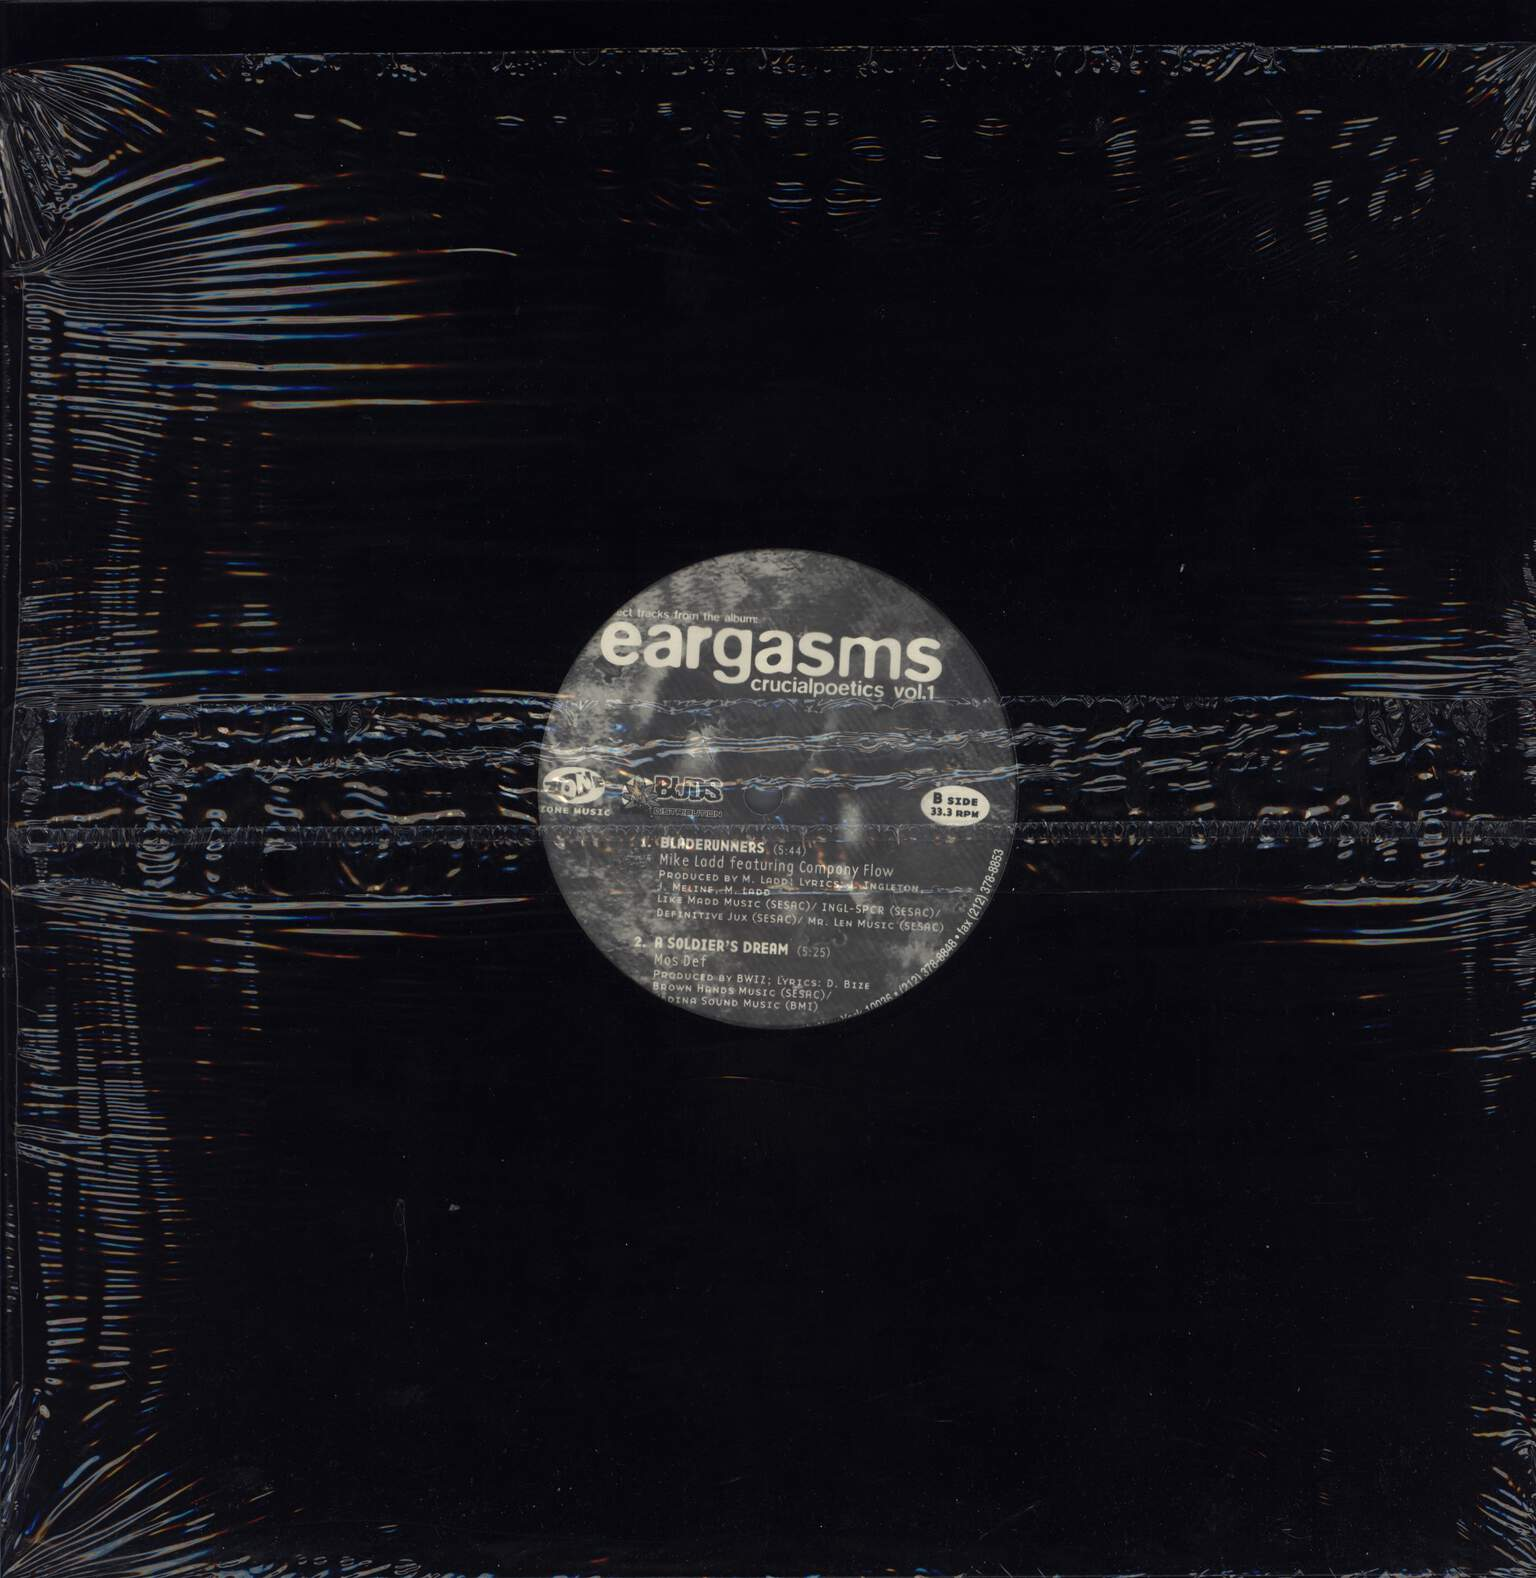 "Various: Select Tracks From The Album: Eargasms Crucialpoetics Vol. 1, 12"" Maxi Single (Vinyl)"